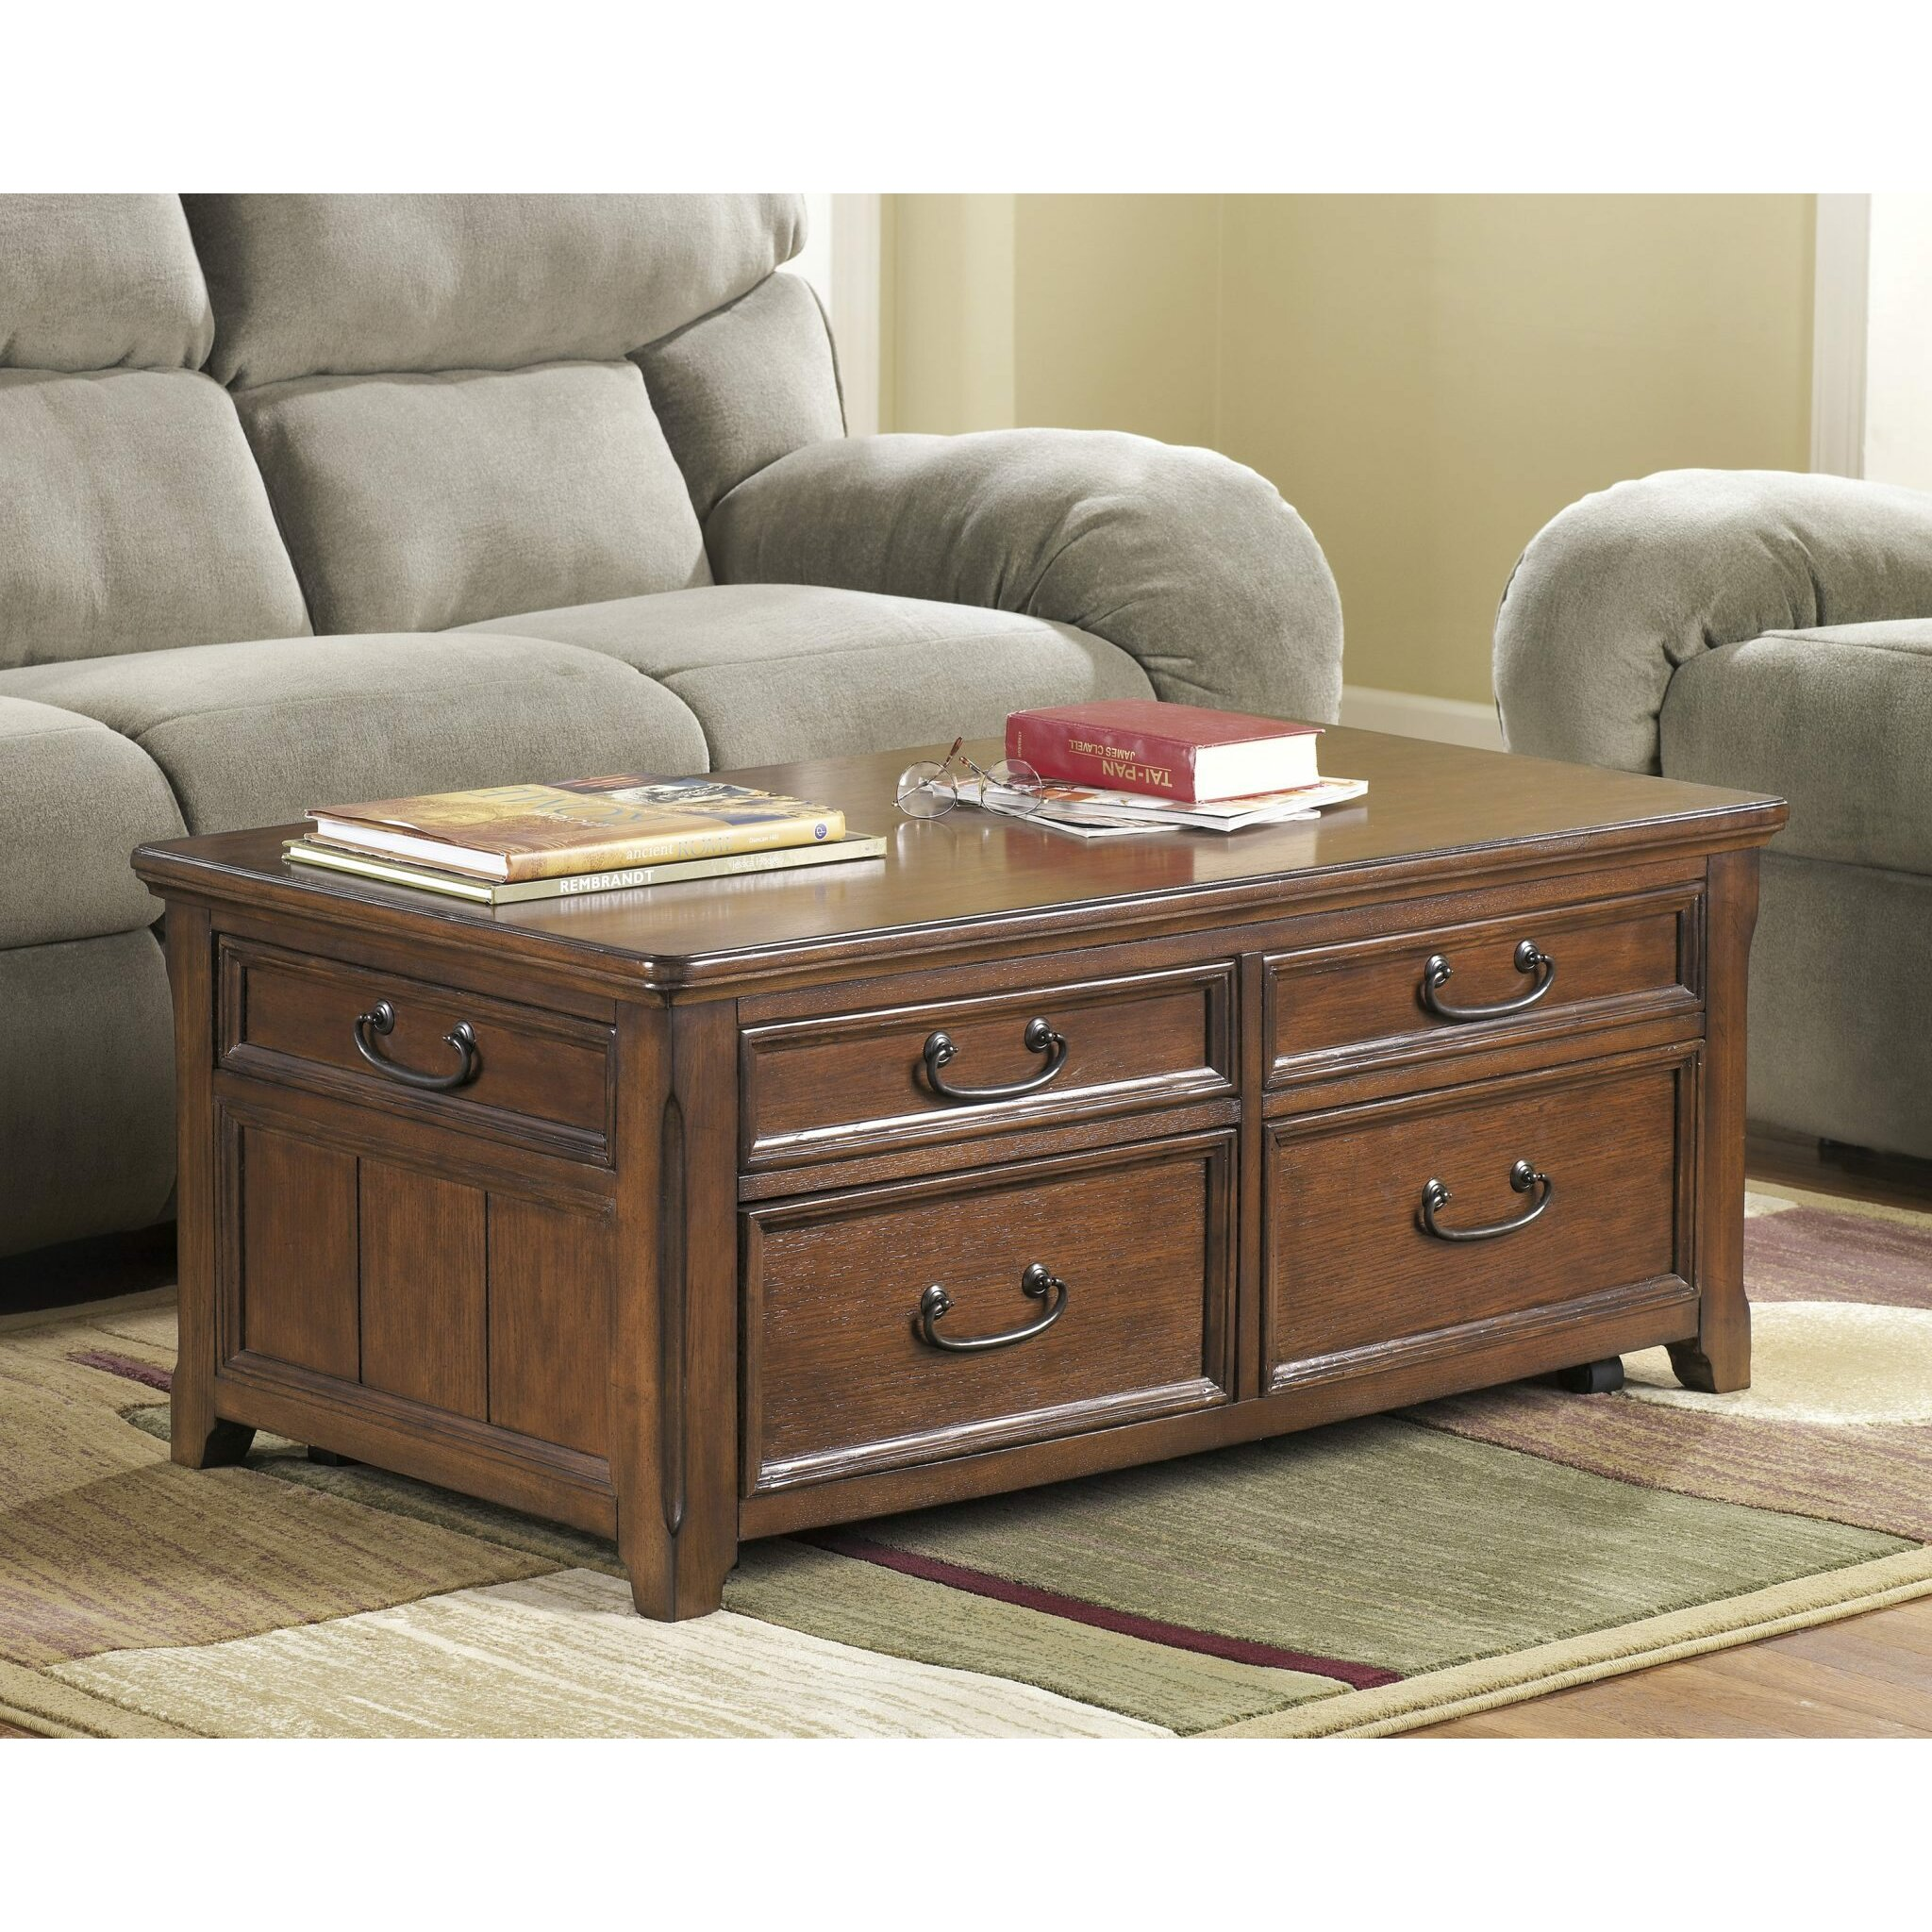 Dual Lift Top Coffee Table Darby Home Co Mathis Coffee Table Trunk With Lift Top Reviews